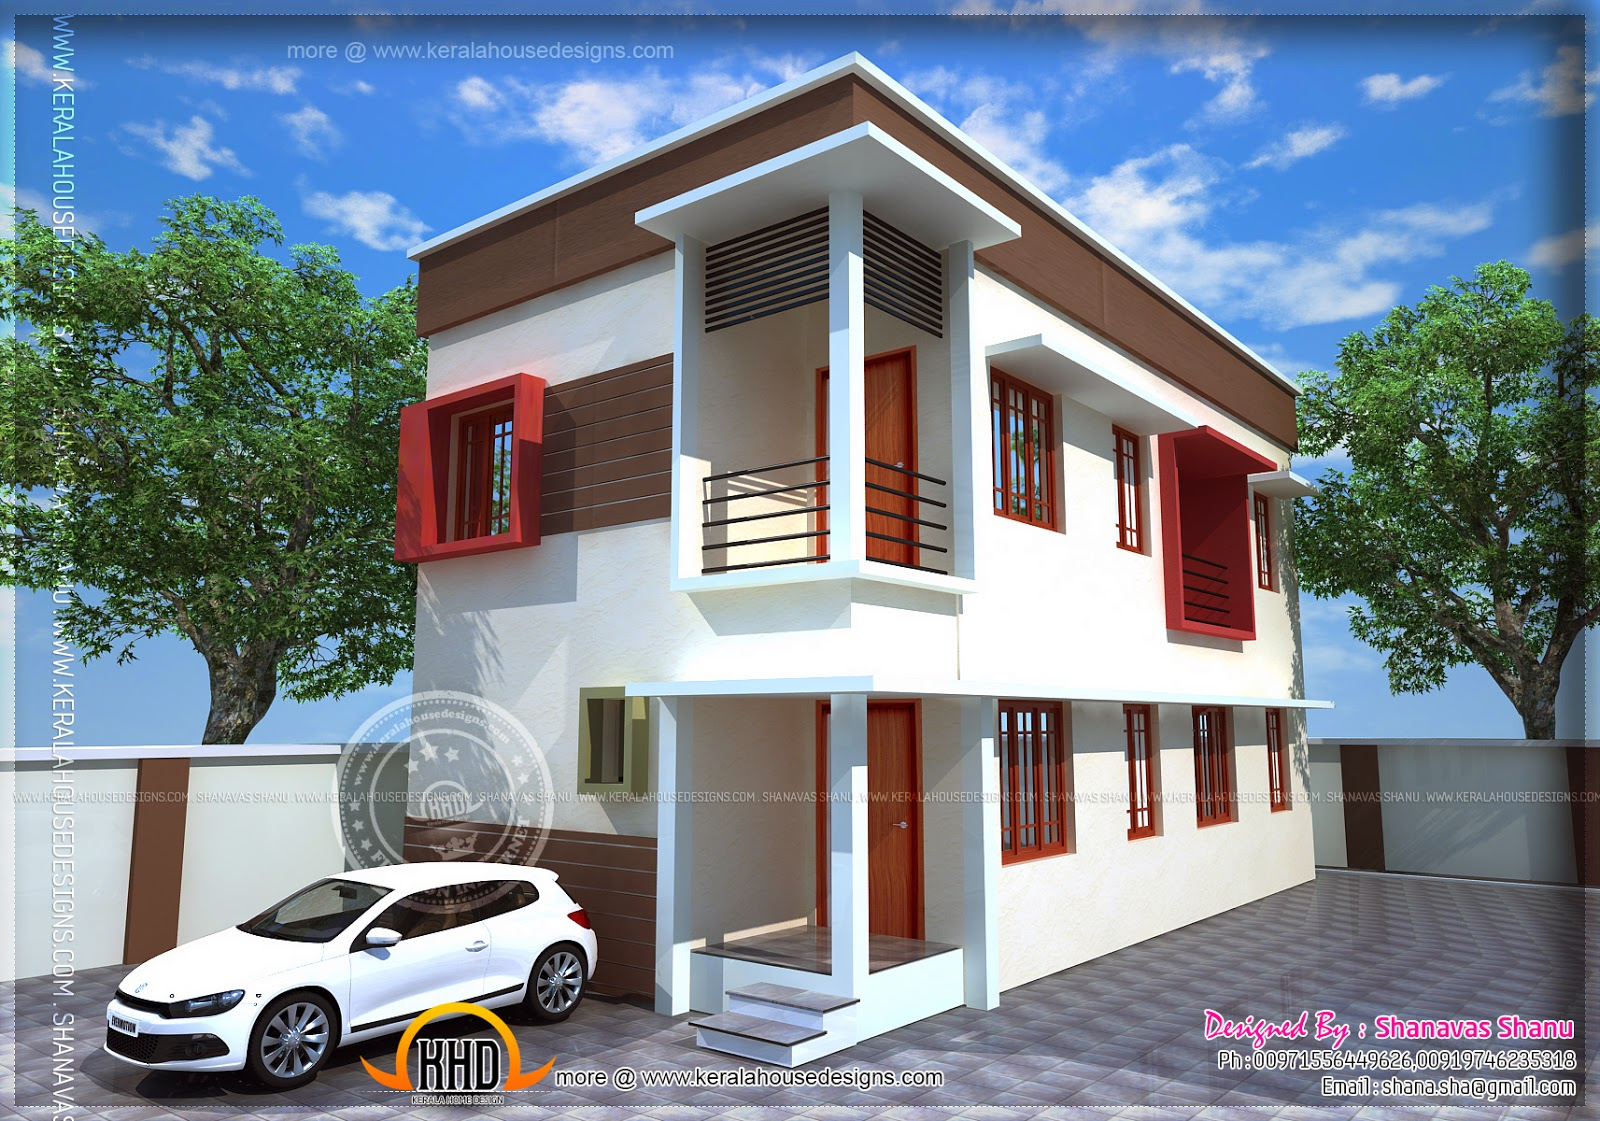 Small plot villa in 275 cents of land Kerala home